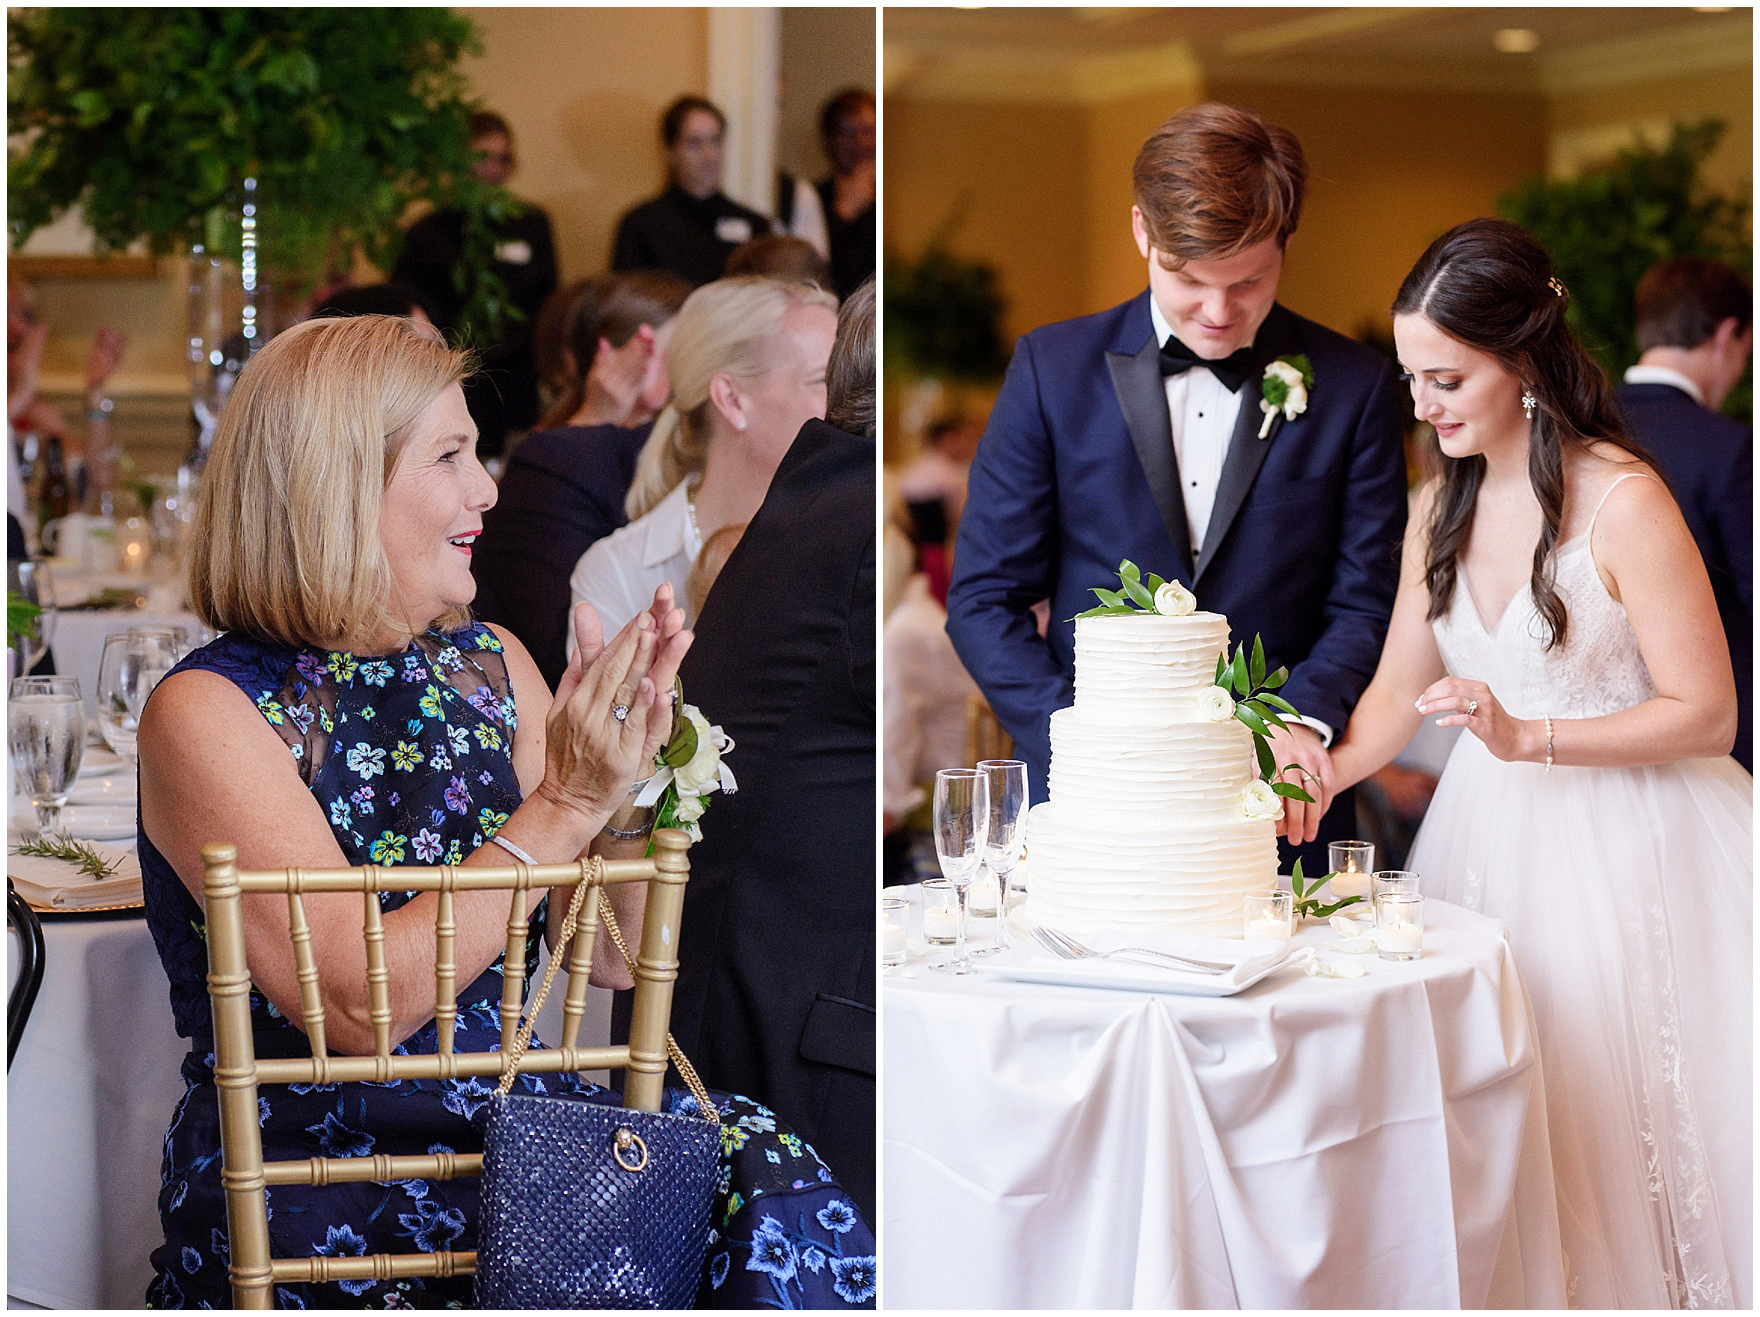 The bride and groom cut the cake at their Butterfield Country Club wedding.